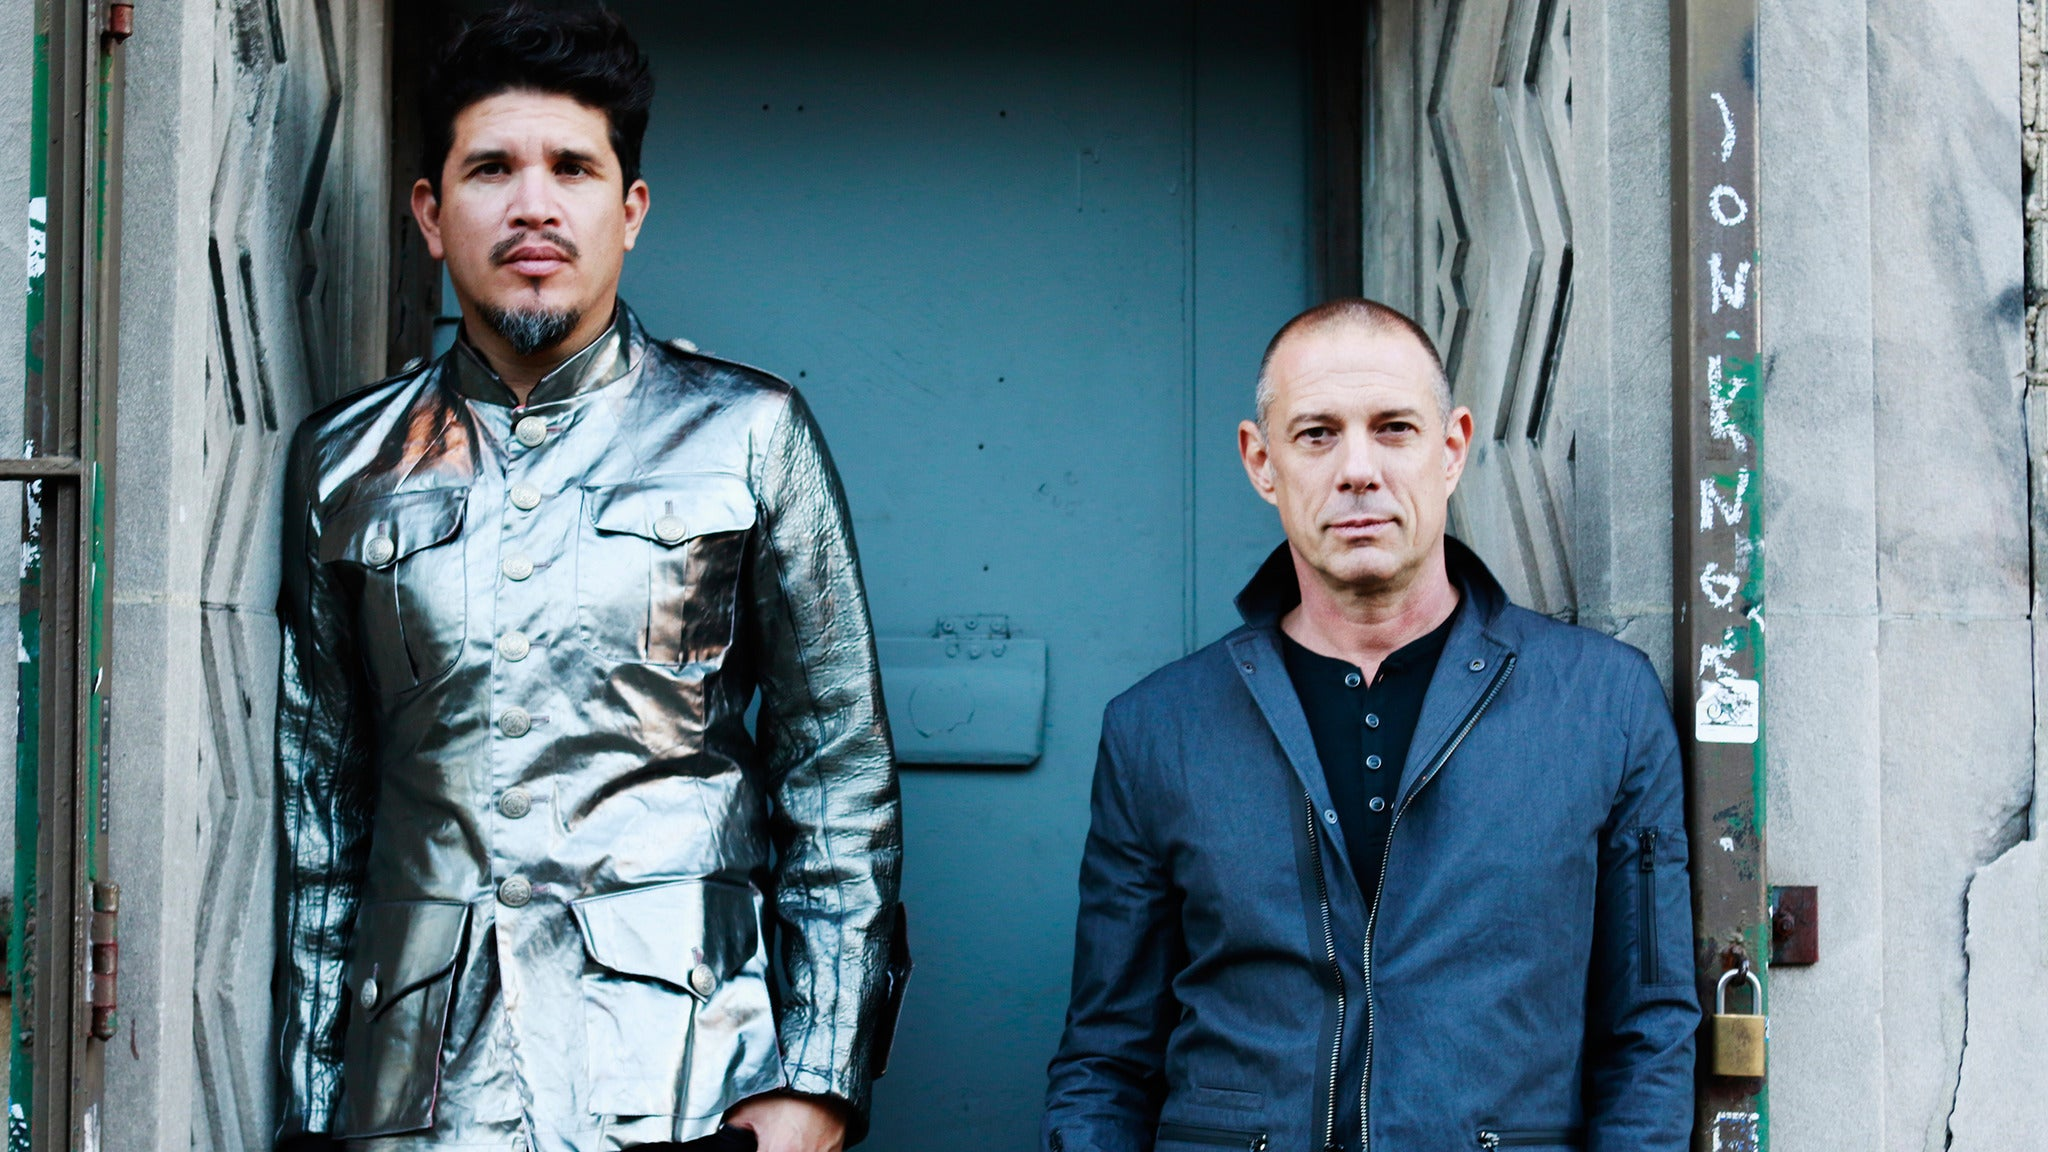 Thievery Corporation presented by SiriusXM at Nile Theater